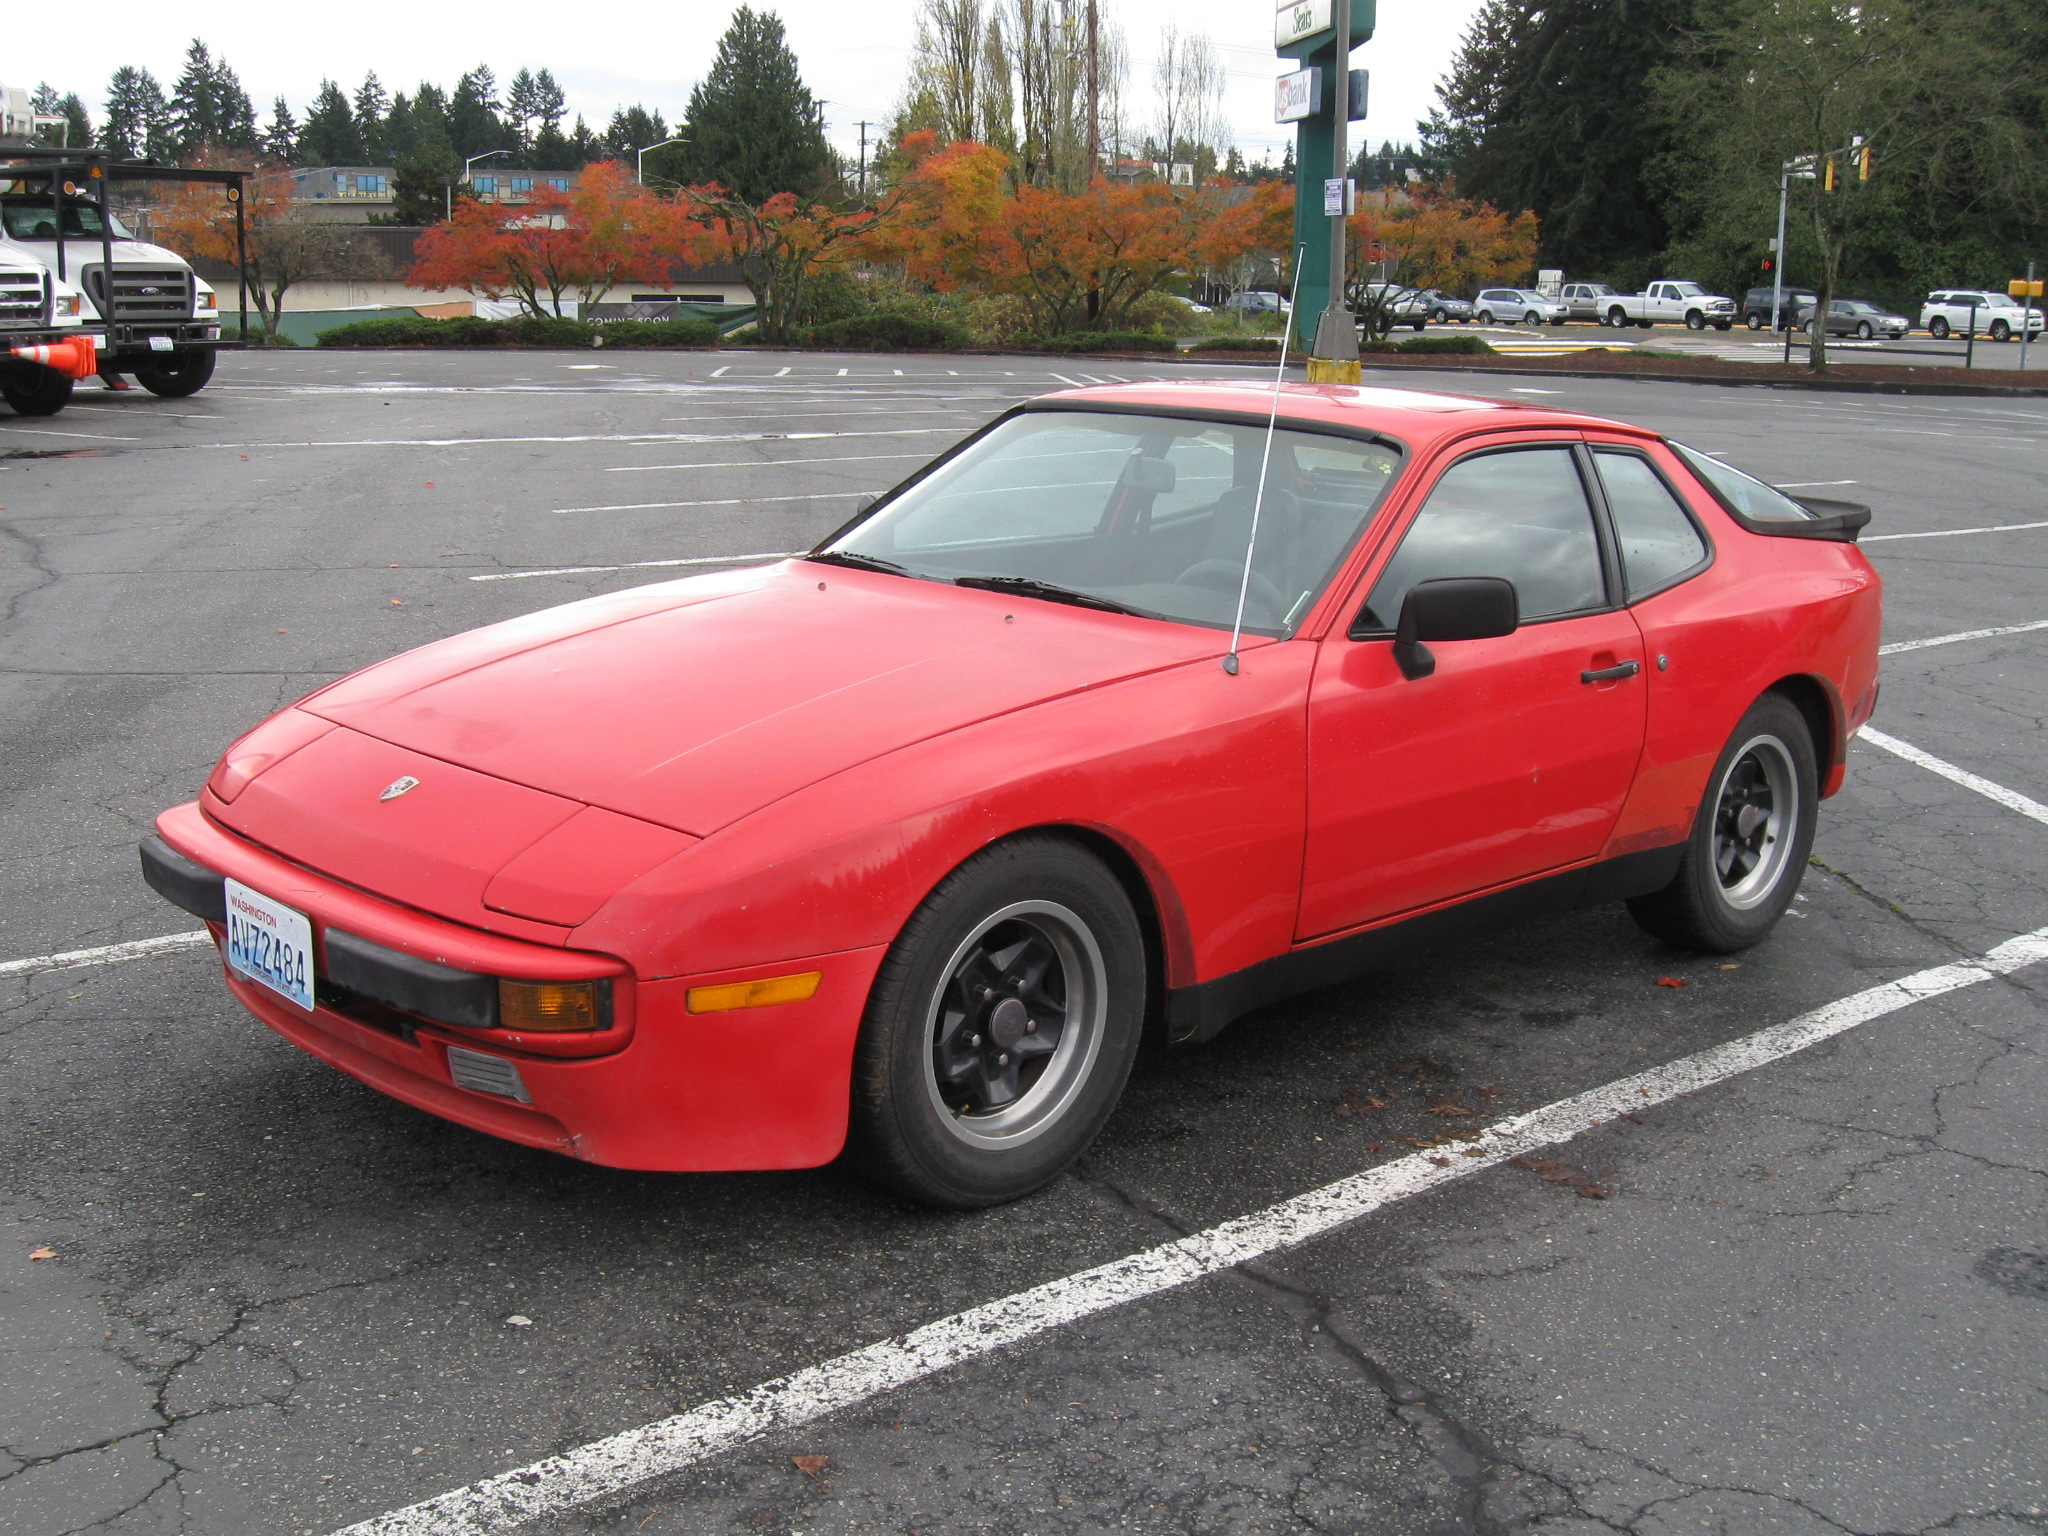 Porsche 944 Horn Location additionally Wiring Diagram Type 924 S Model 86 Sheet 2 in addition Buick Turbo Wiring 1984 as well Porsche 911 Fuel Pump Wiring Diagram as well Porsche 3 0 Engine Diagram. on 1984 porsche 944 engine wiring diagram